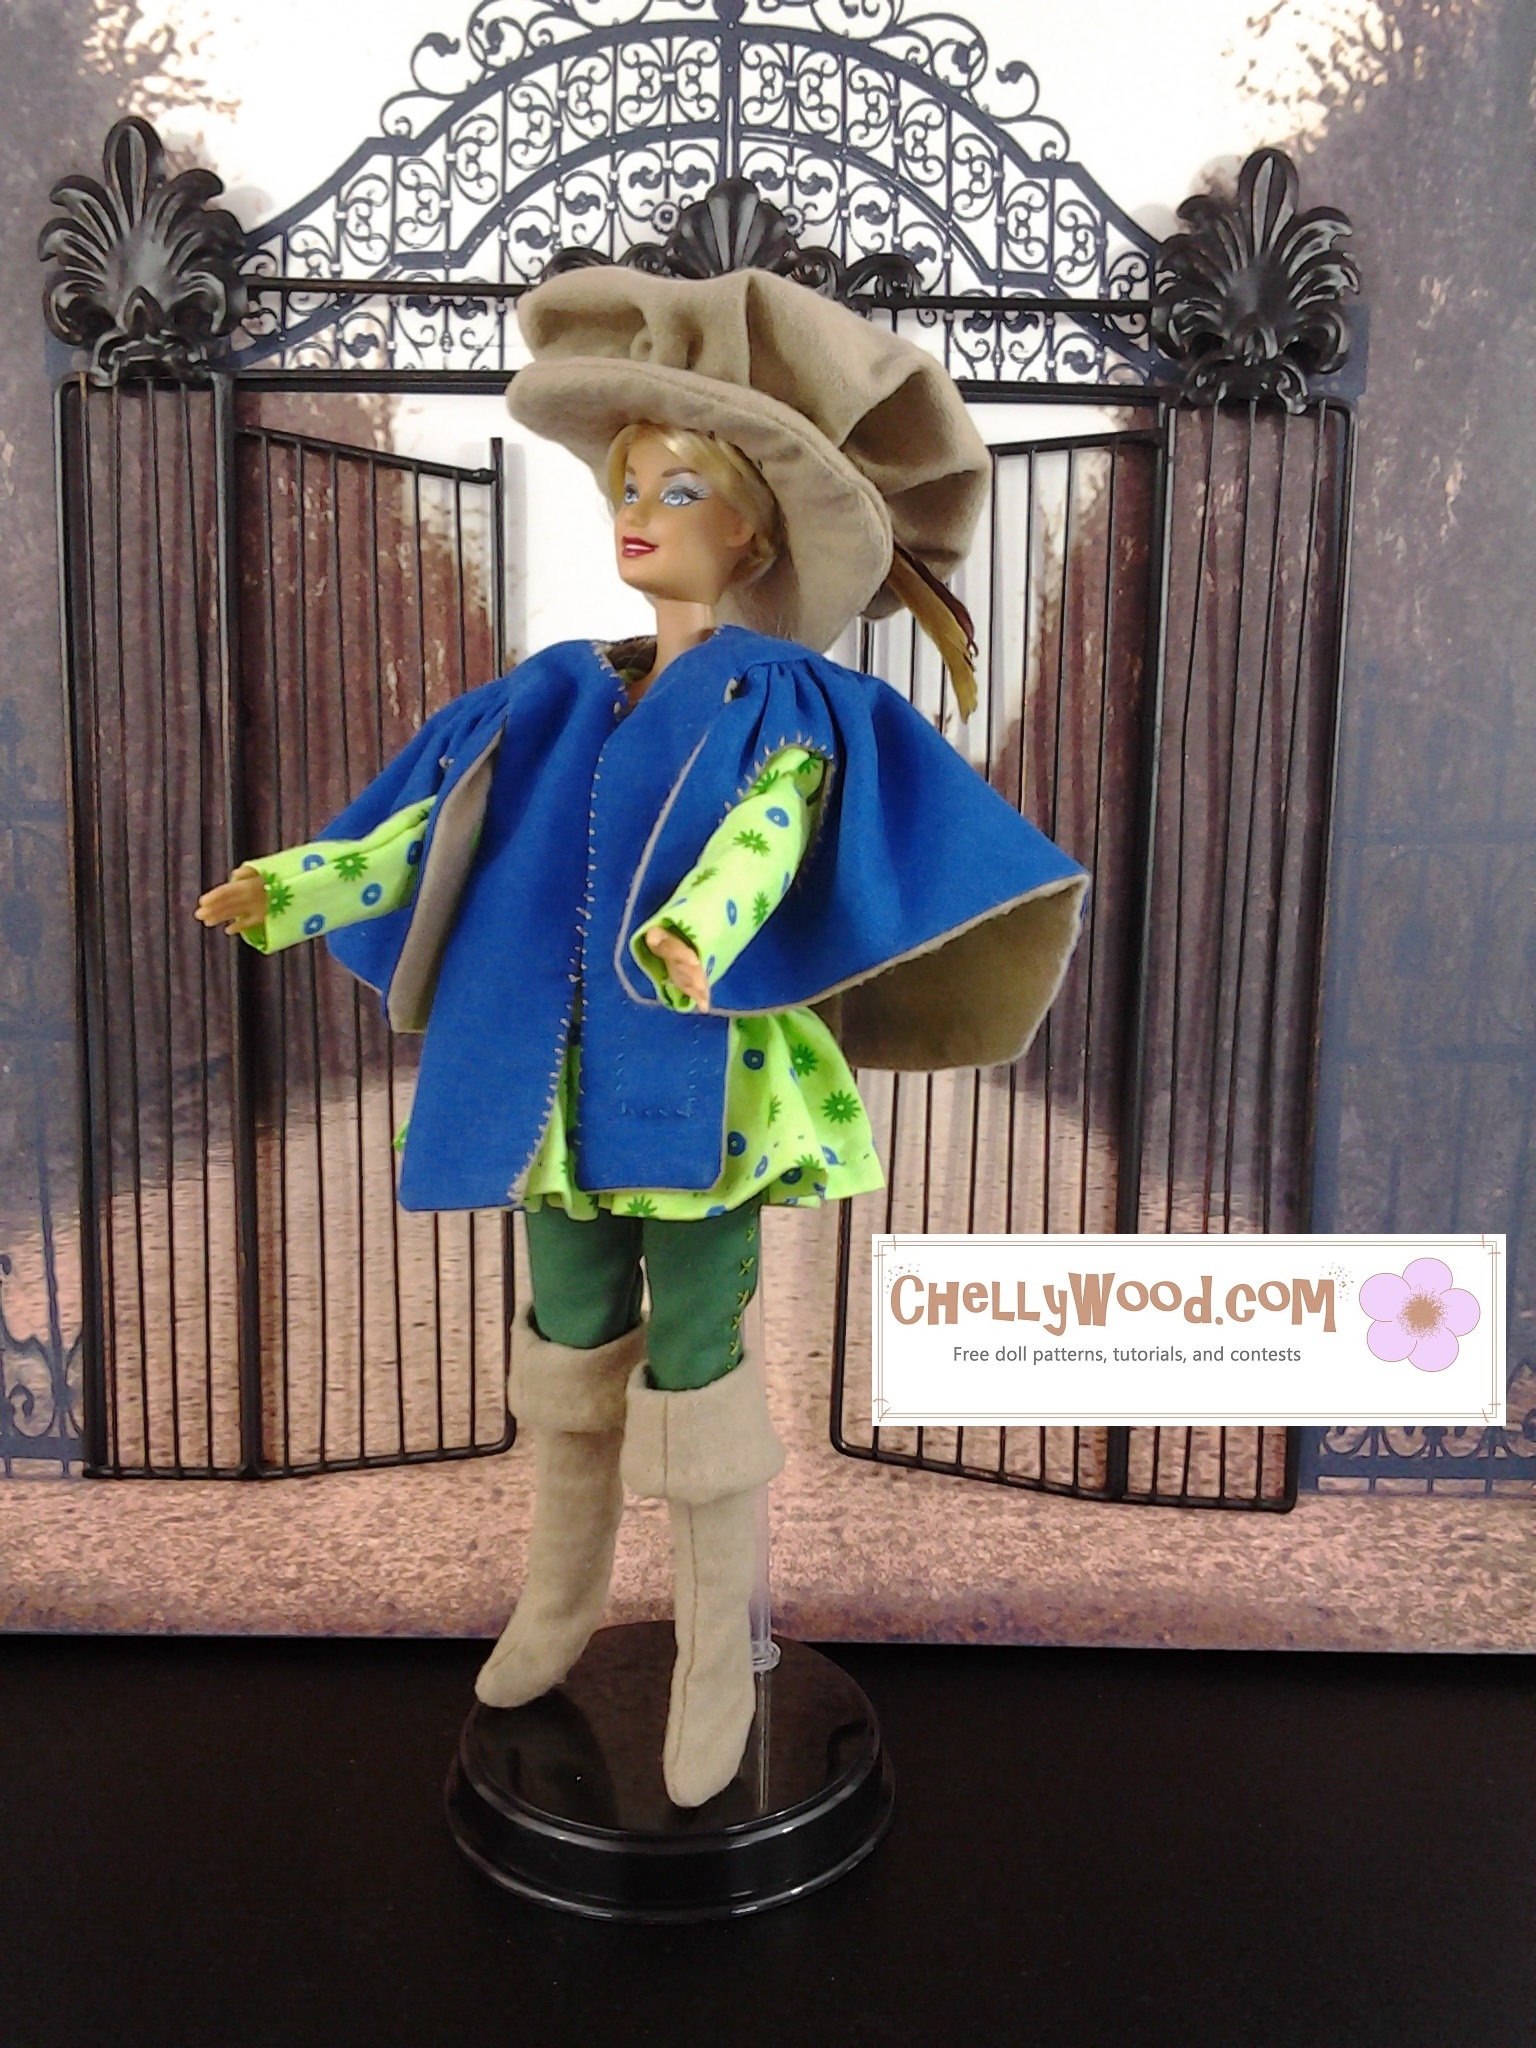 A Mattel Barbie doll models a Three Musketeers costume, including a hat with a feather in it, a jacket, a tunic, trousers, and thigh-high boots (with a cuff folding them down to knee length).